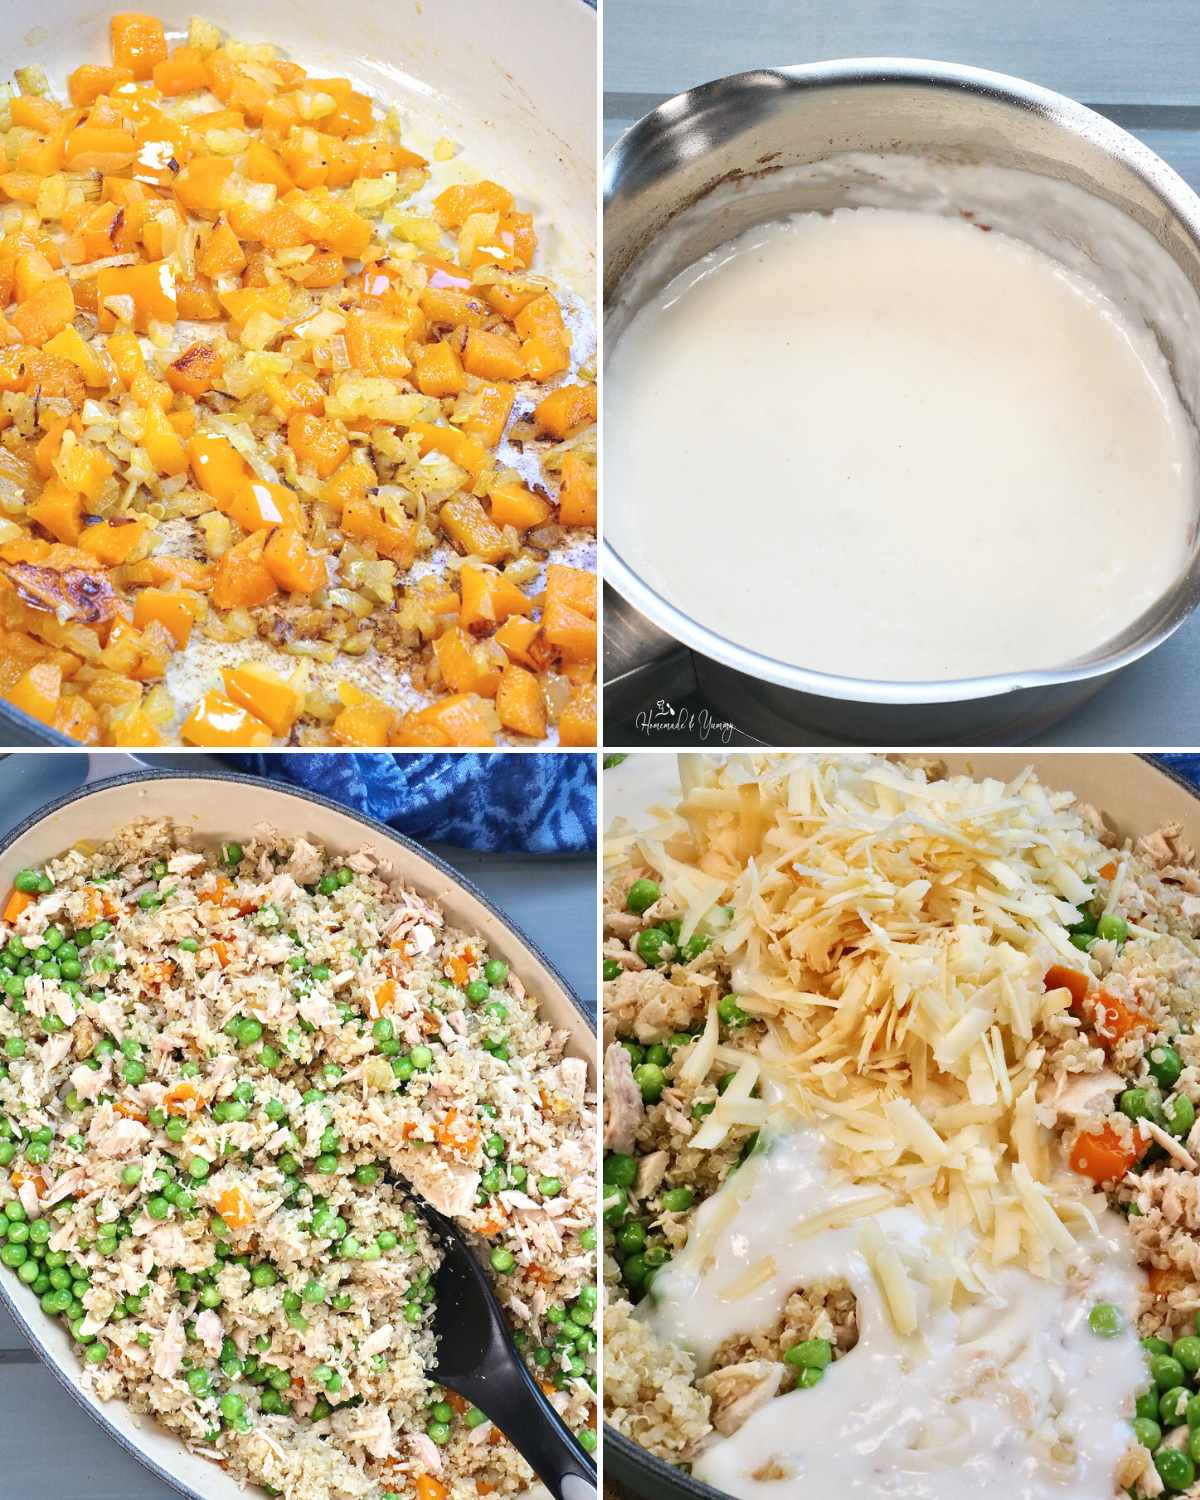 Collage of steps 1-2 to make the casserole.